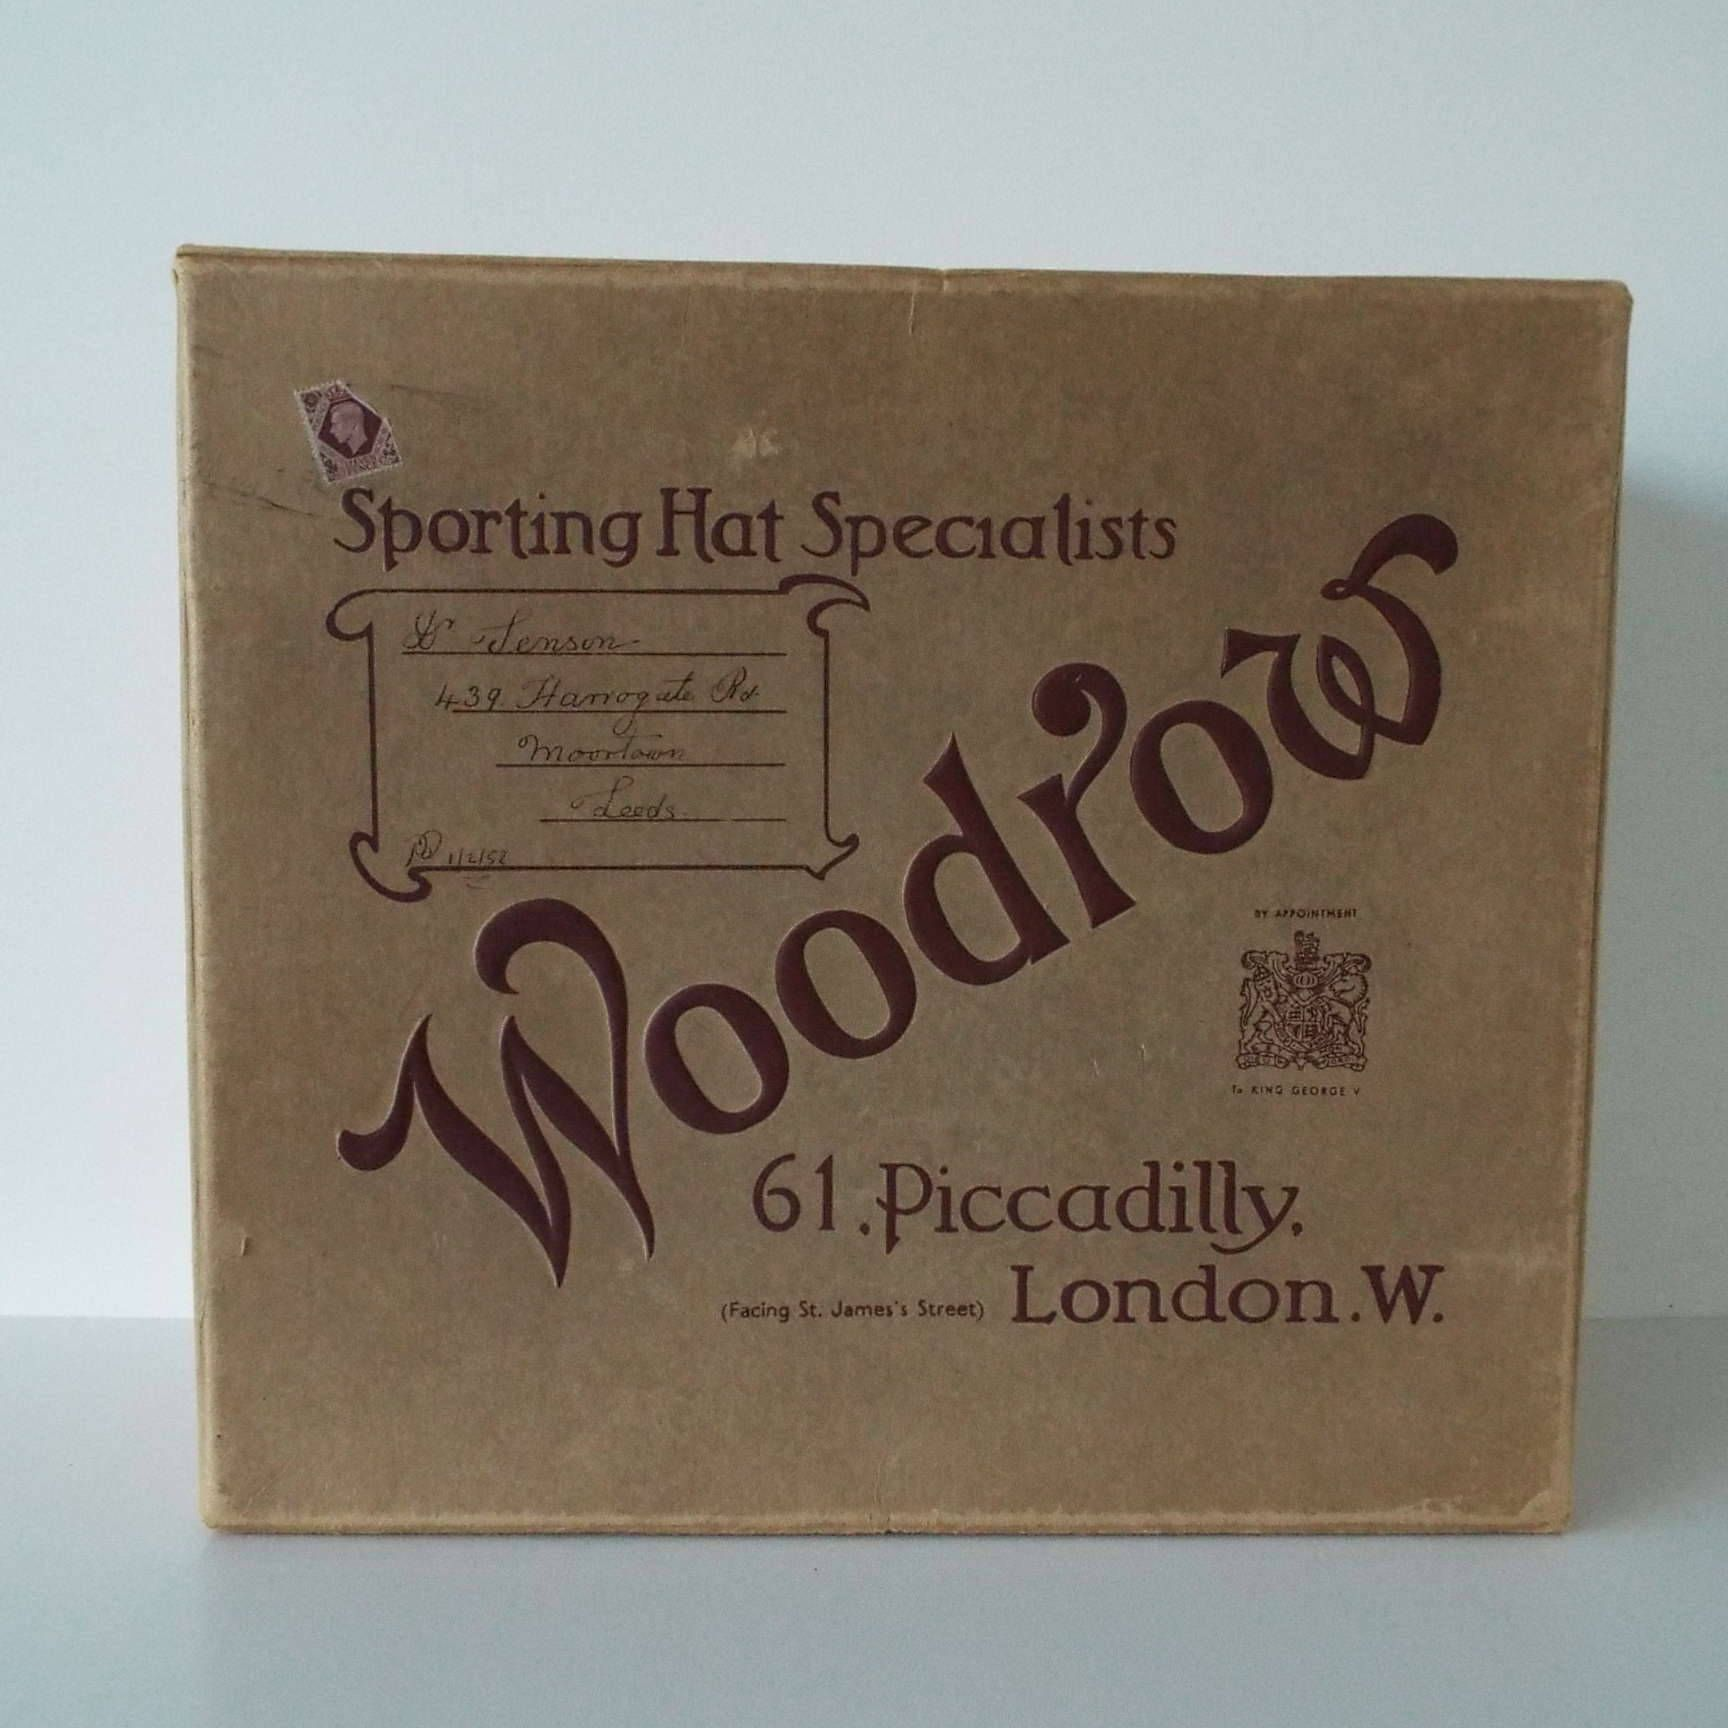 a736d37f6 Vintage 1950 s Woodrow Sporting Hat Specialists Piccadilly London Hat Box  Shop Window Display Film Prop King